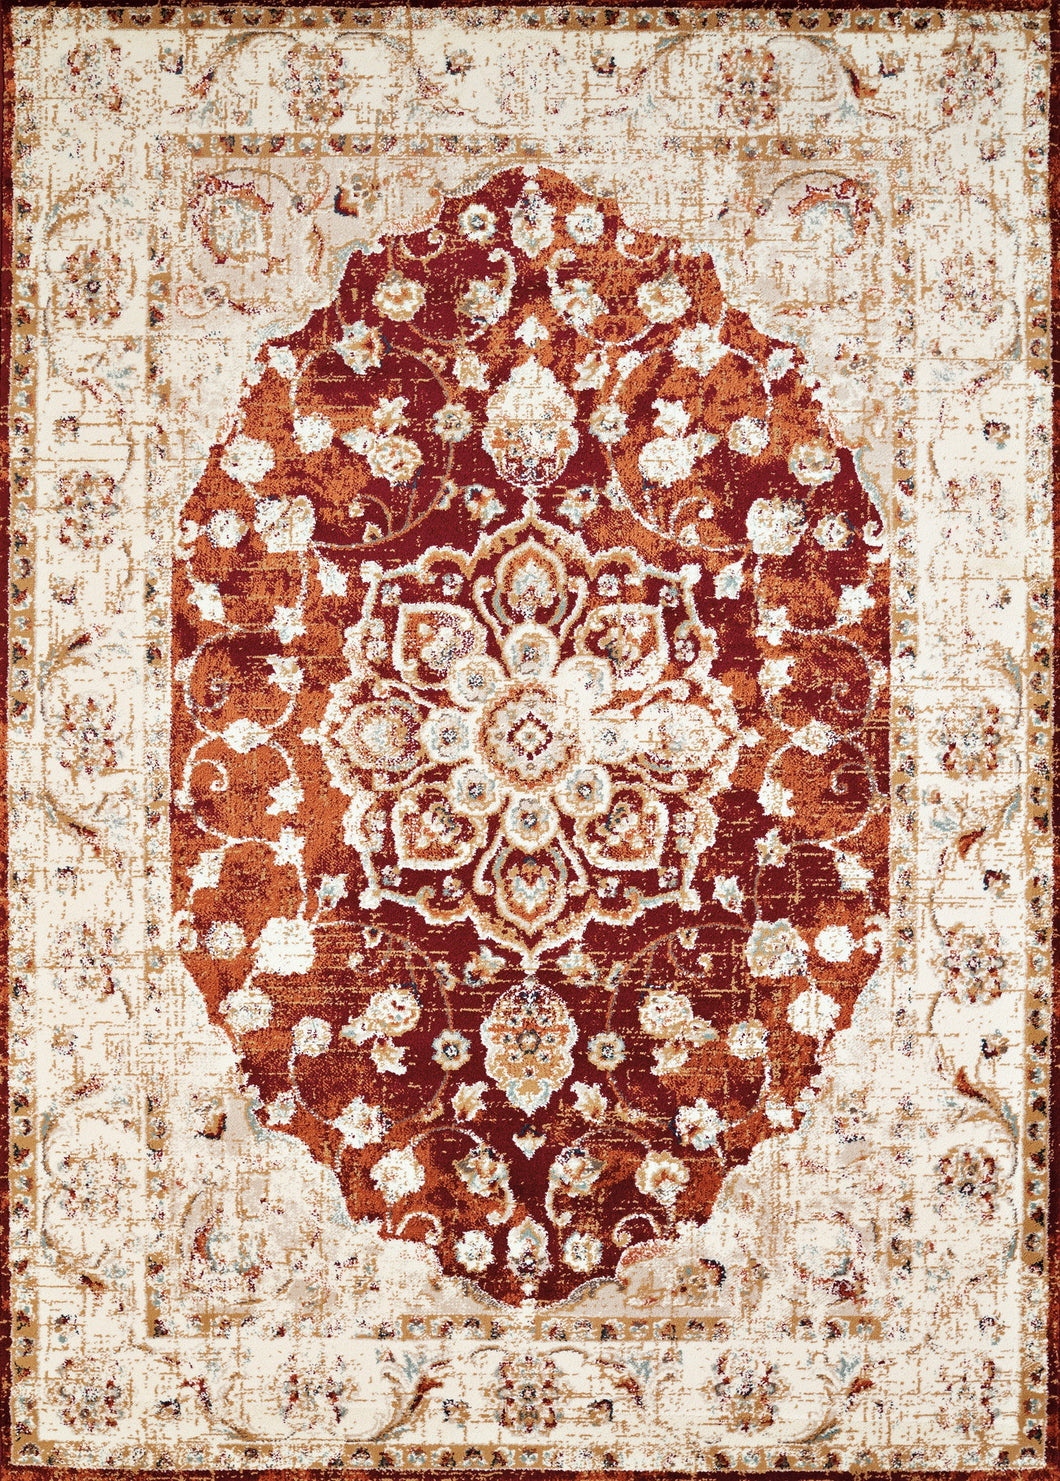 United Weavers  Bridges  Ponte Vecchio  3001 00436  Crimson  Area Rug